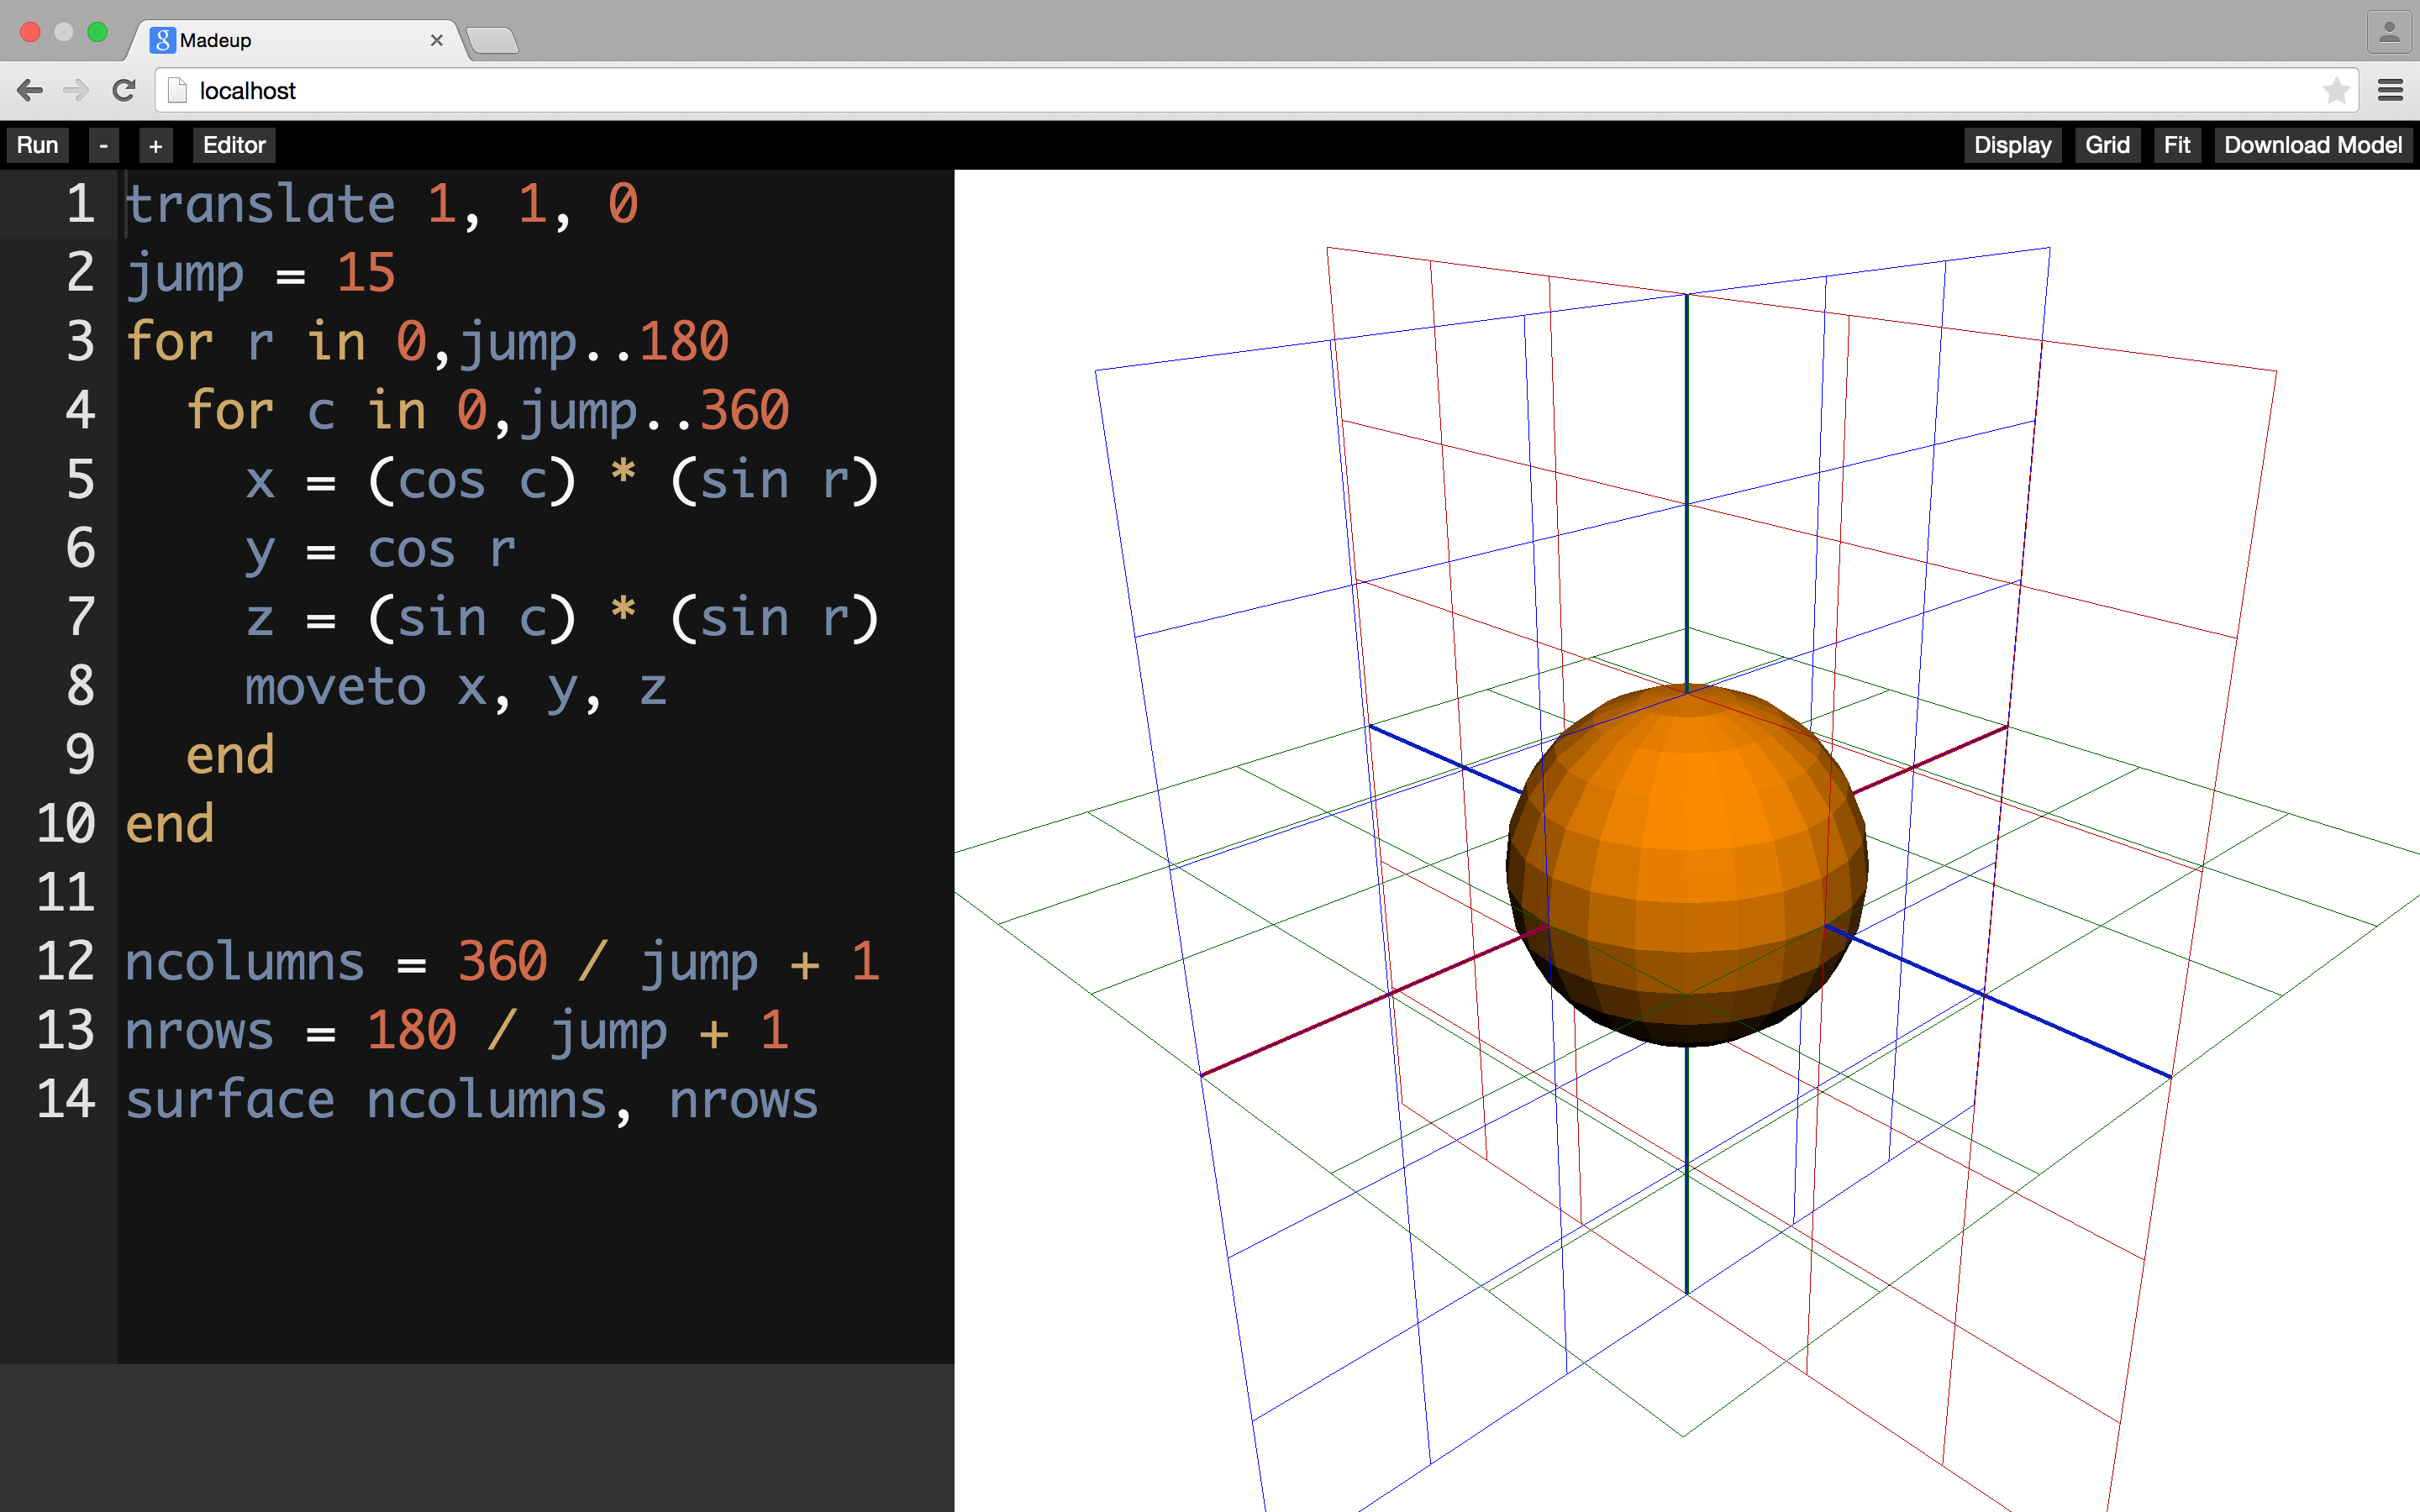 Grid and axis drawing is now available in the web IDE.